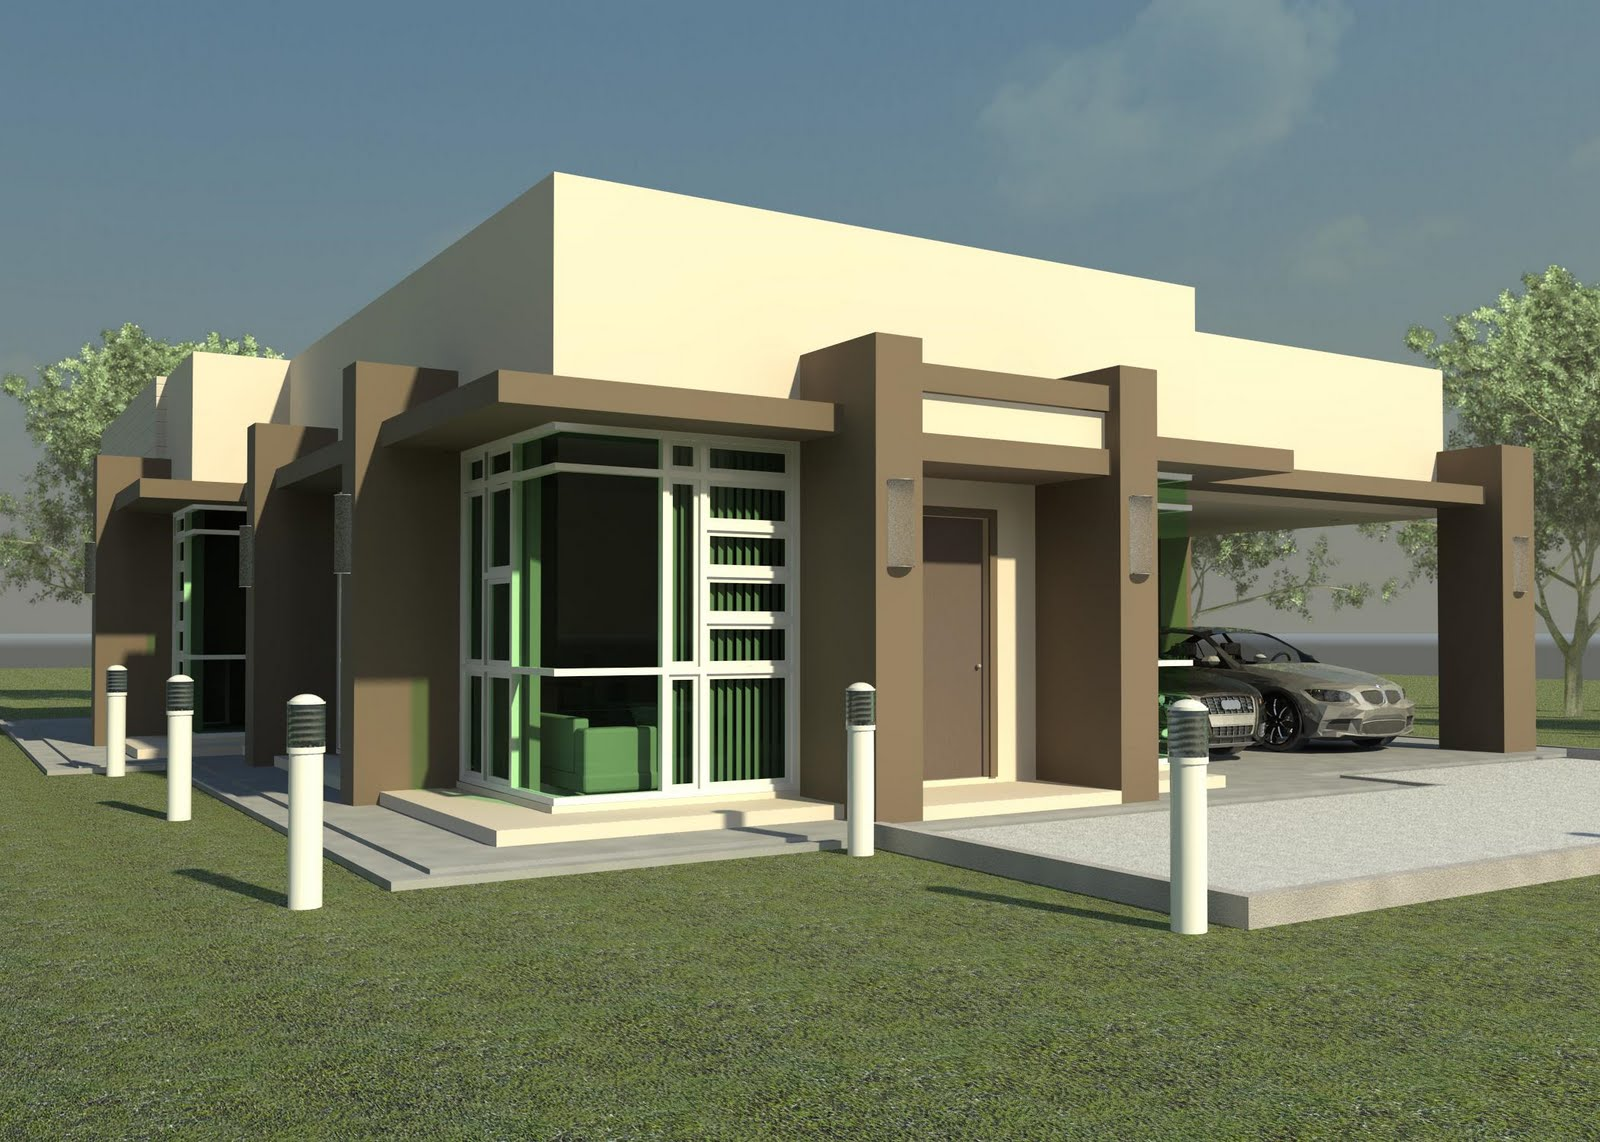 New home designs latest modern small homes designs exterior for Small home design ideas video